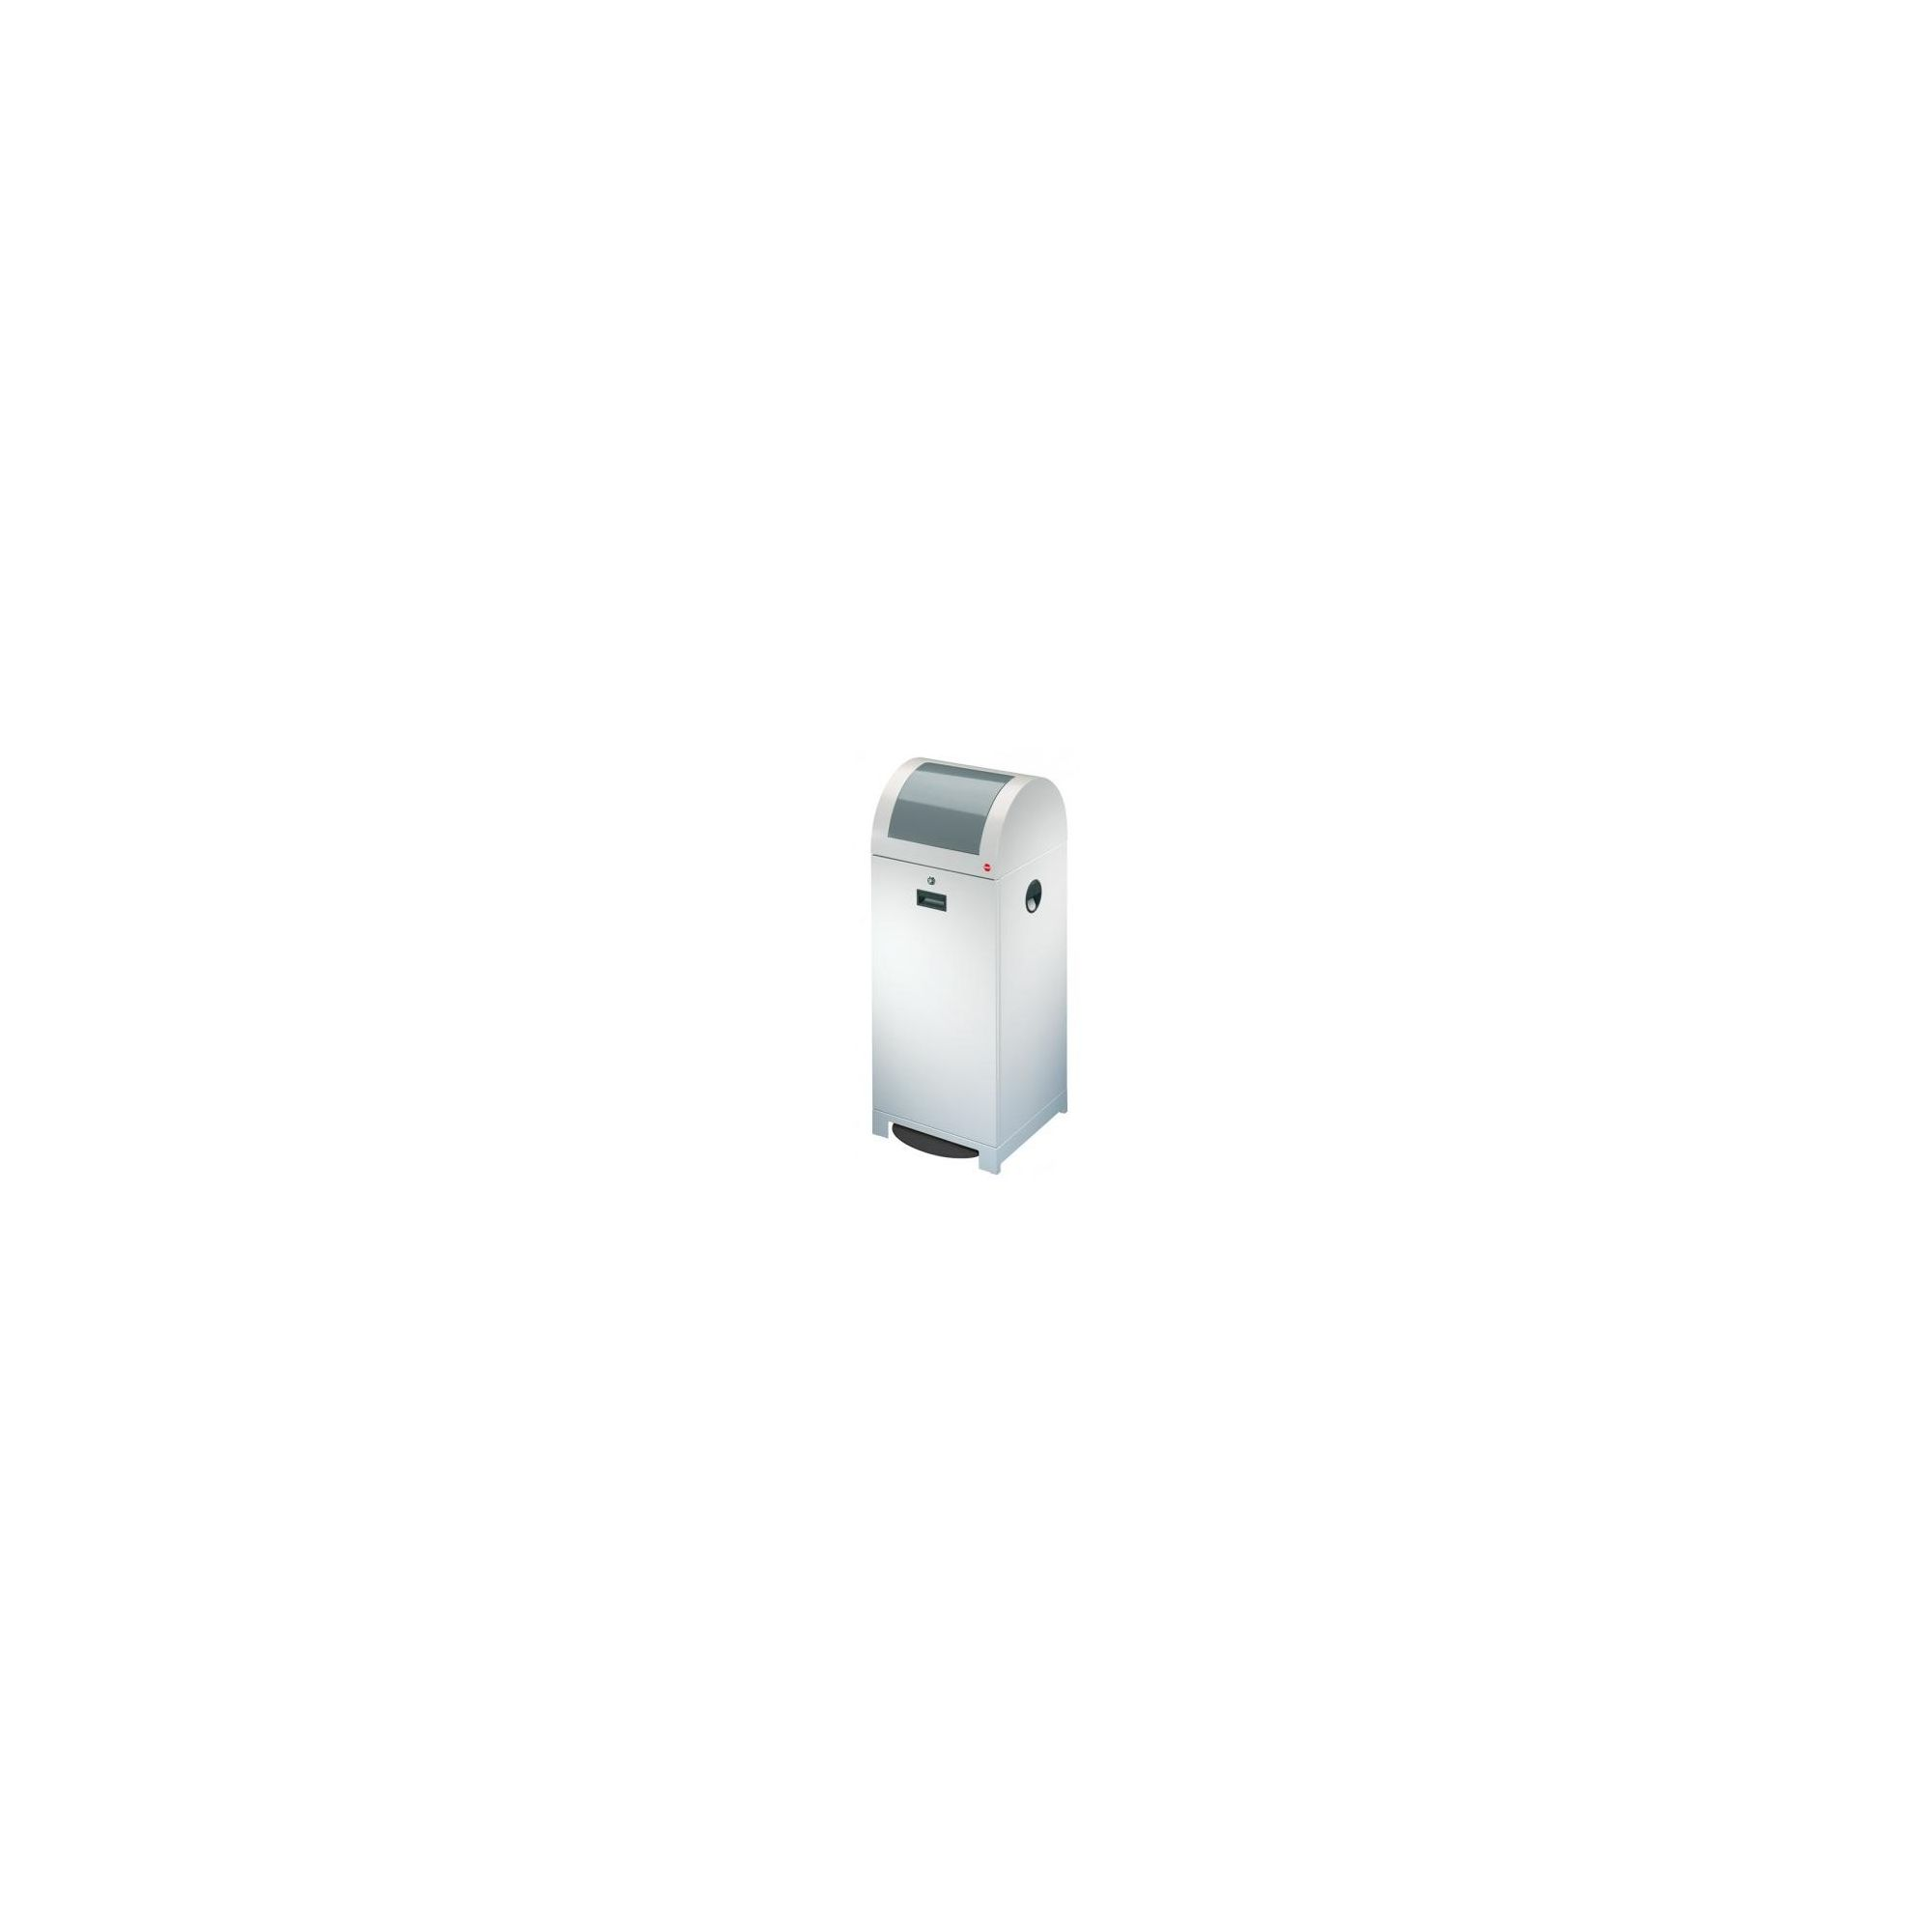 Hailo ProfiLine WSB 70P Recycling and Waste Bin in White Aluminium with Foot-operated Flap at Tescos Direct